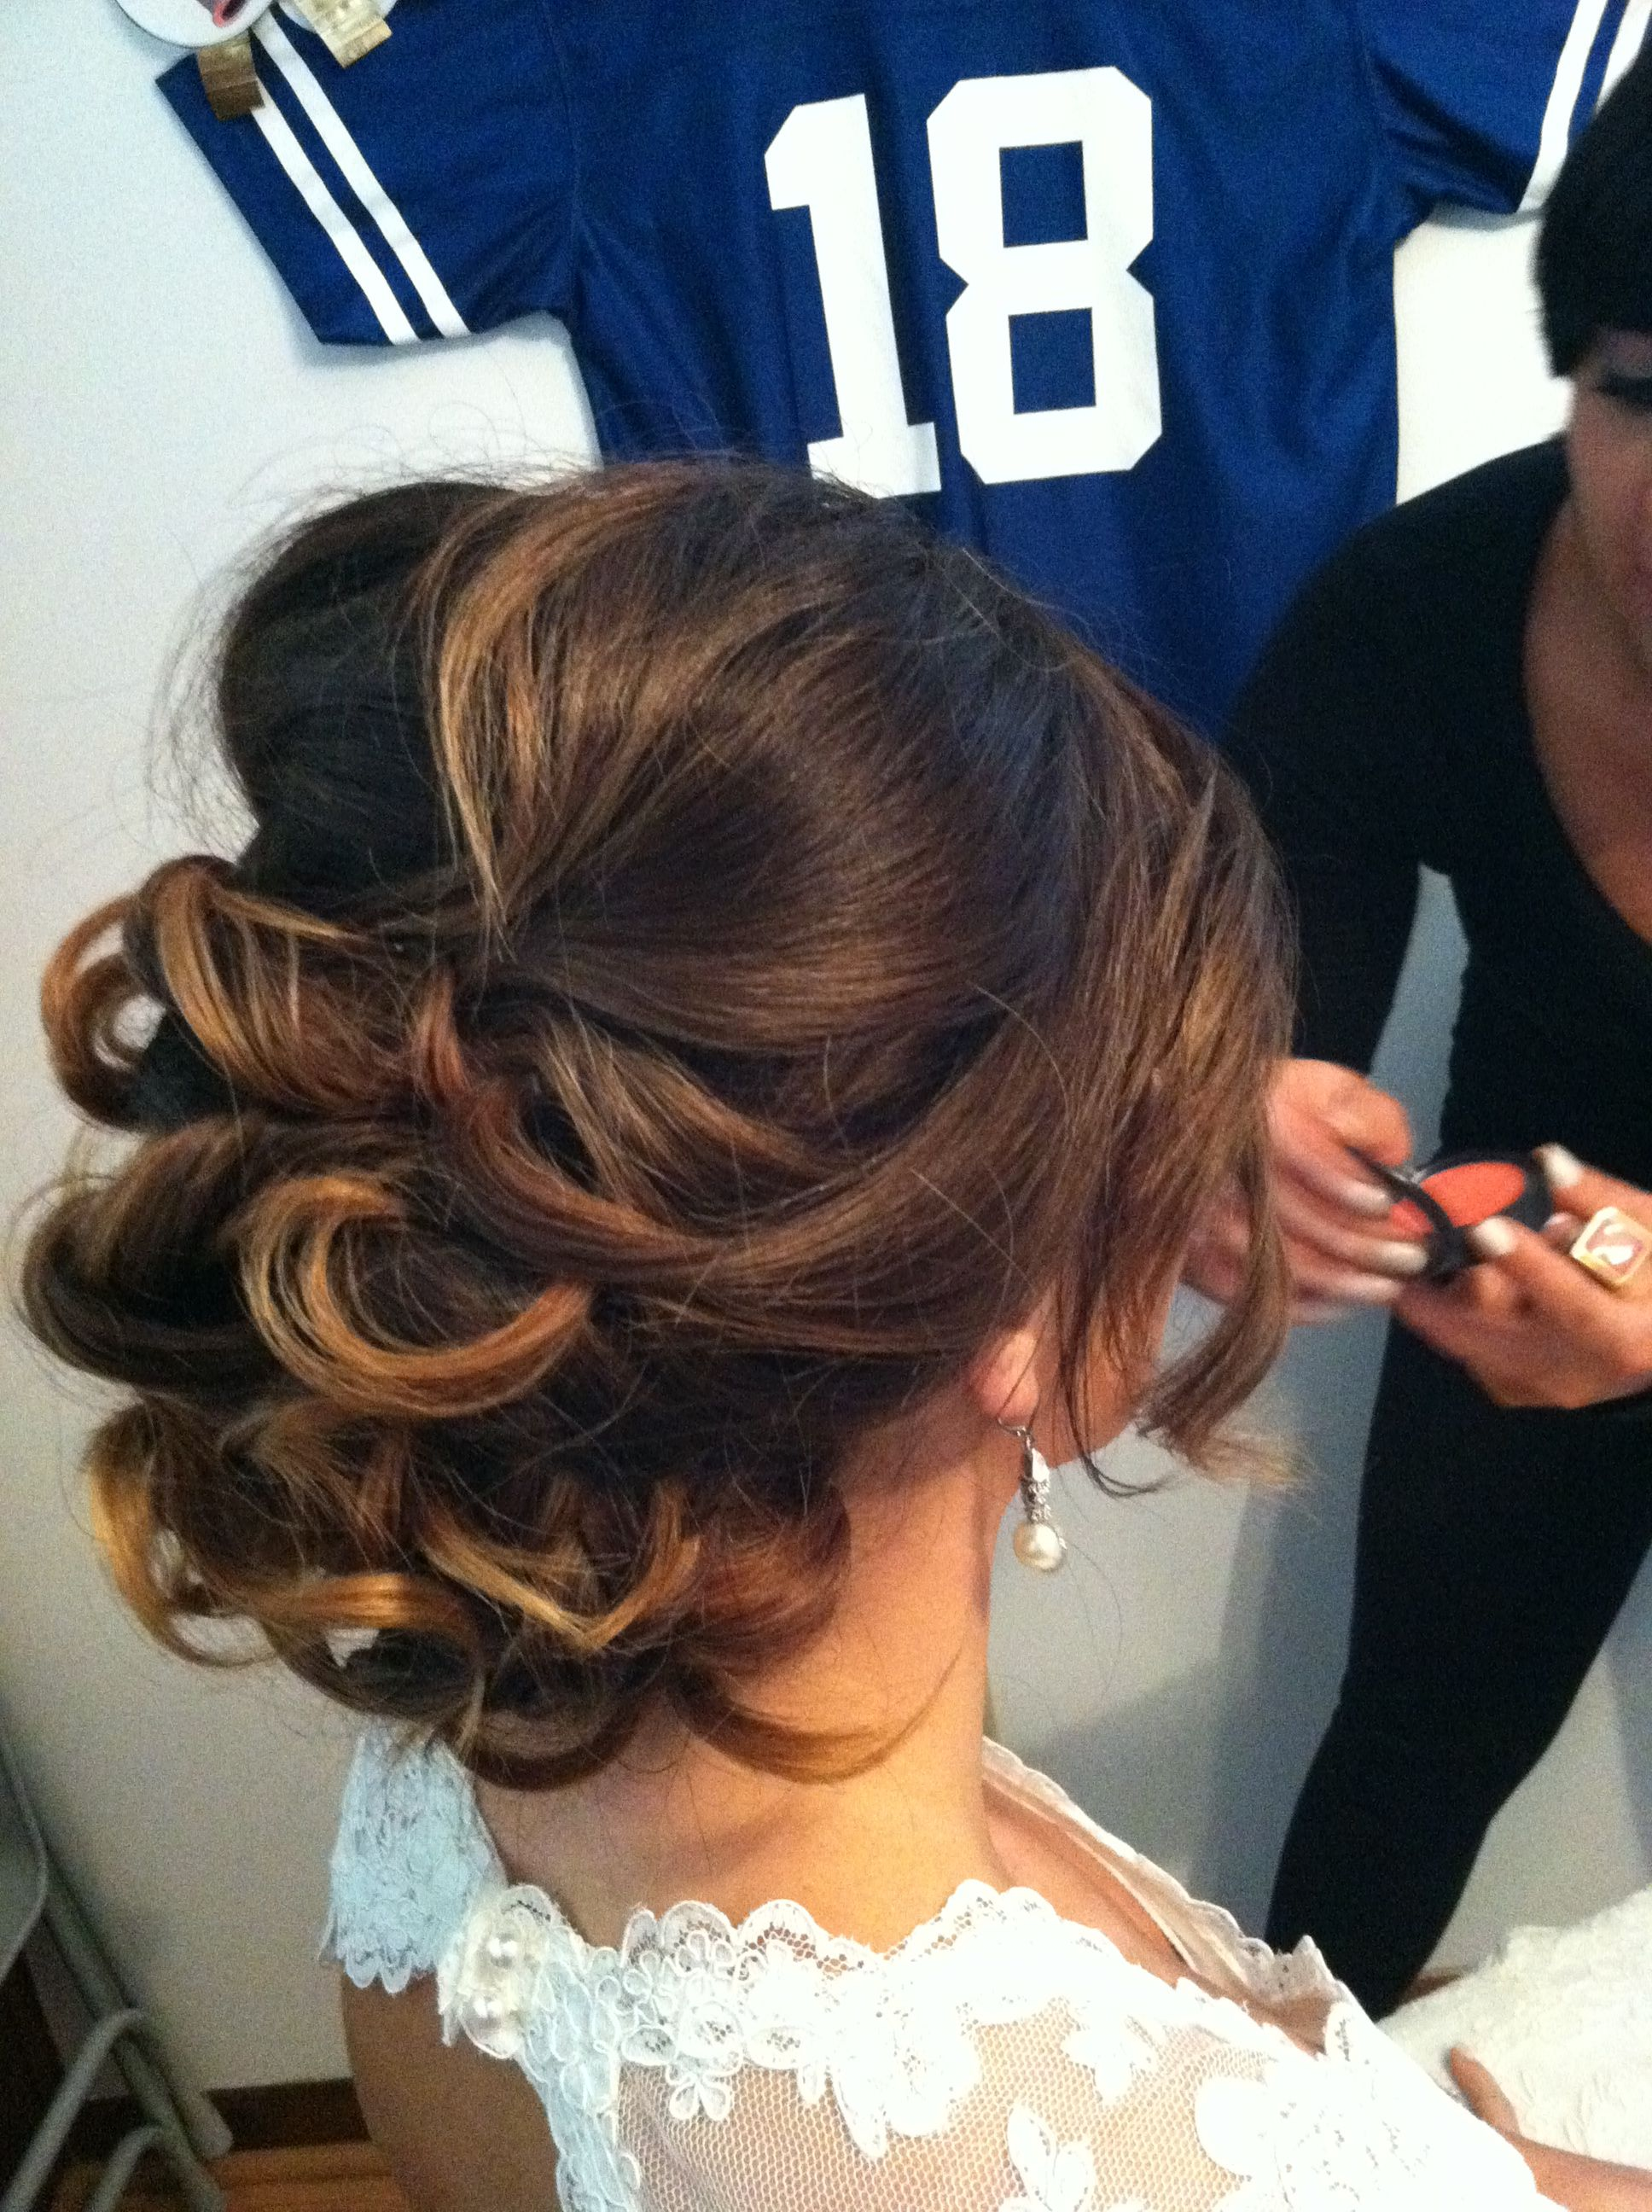 Hair beauty up updo curl wave poof cute beautiful gorgeous